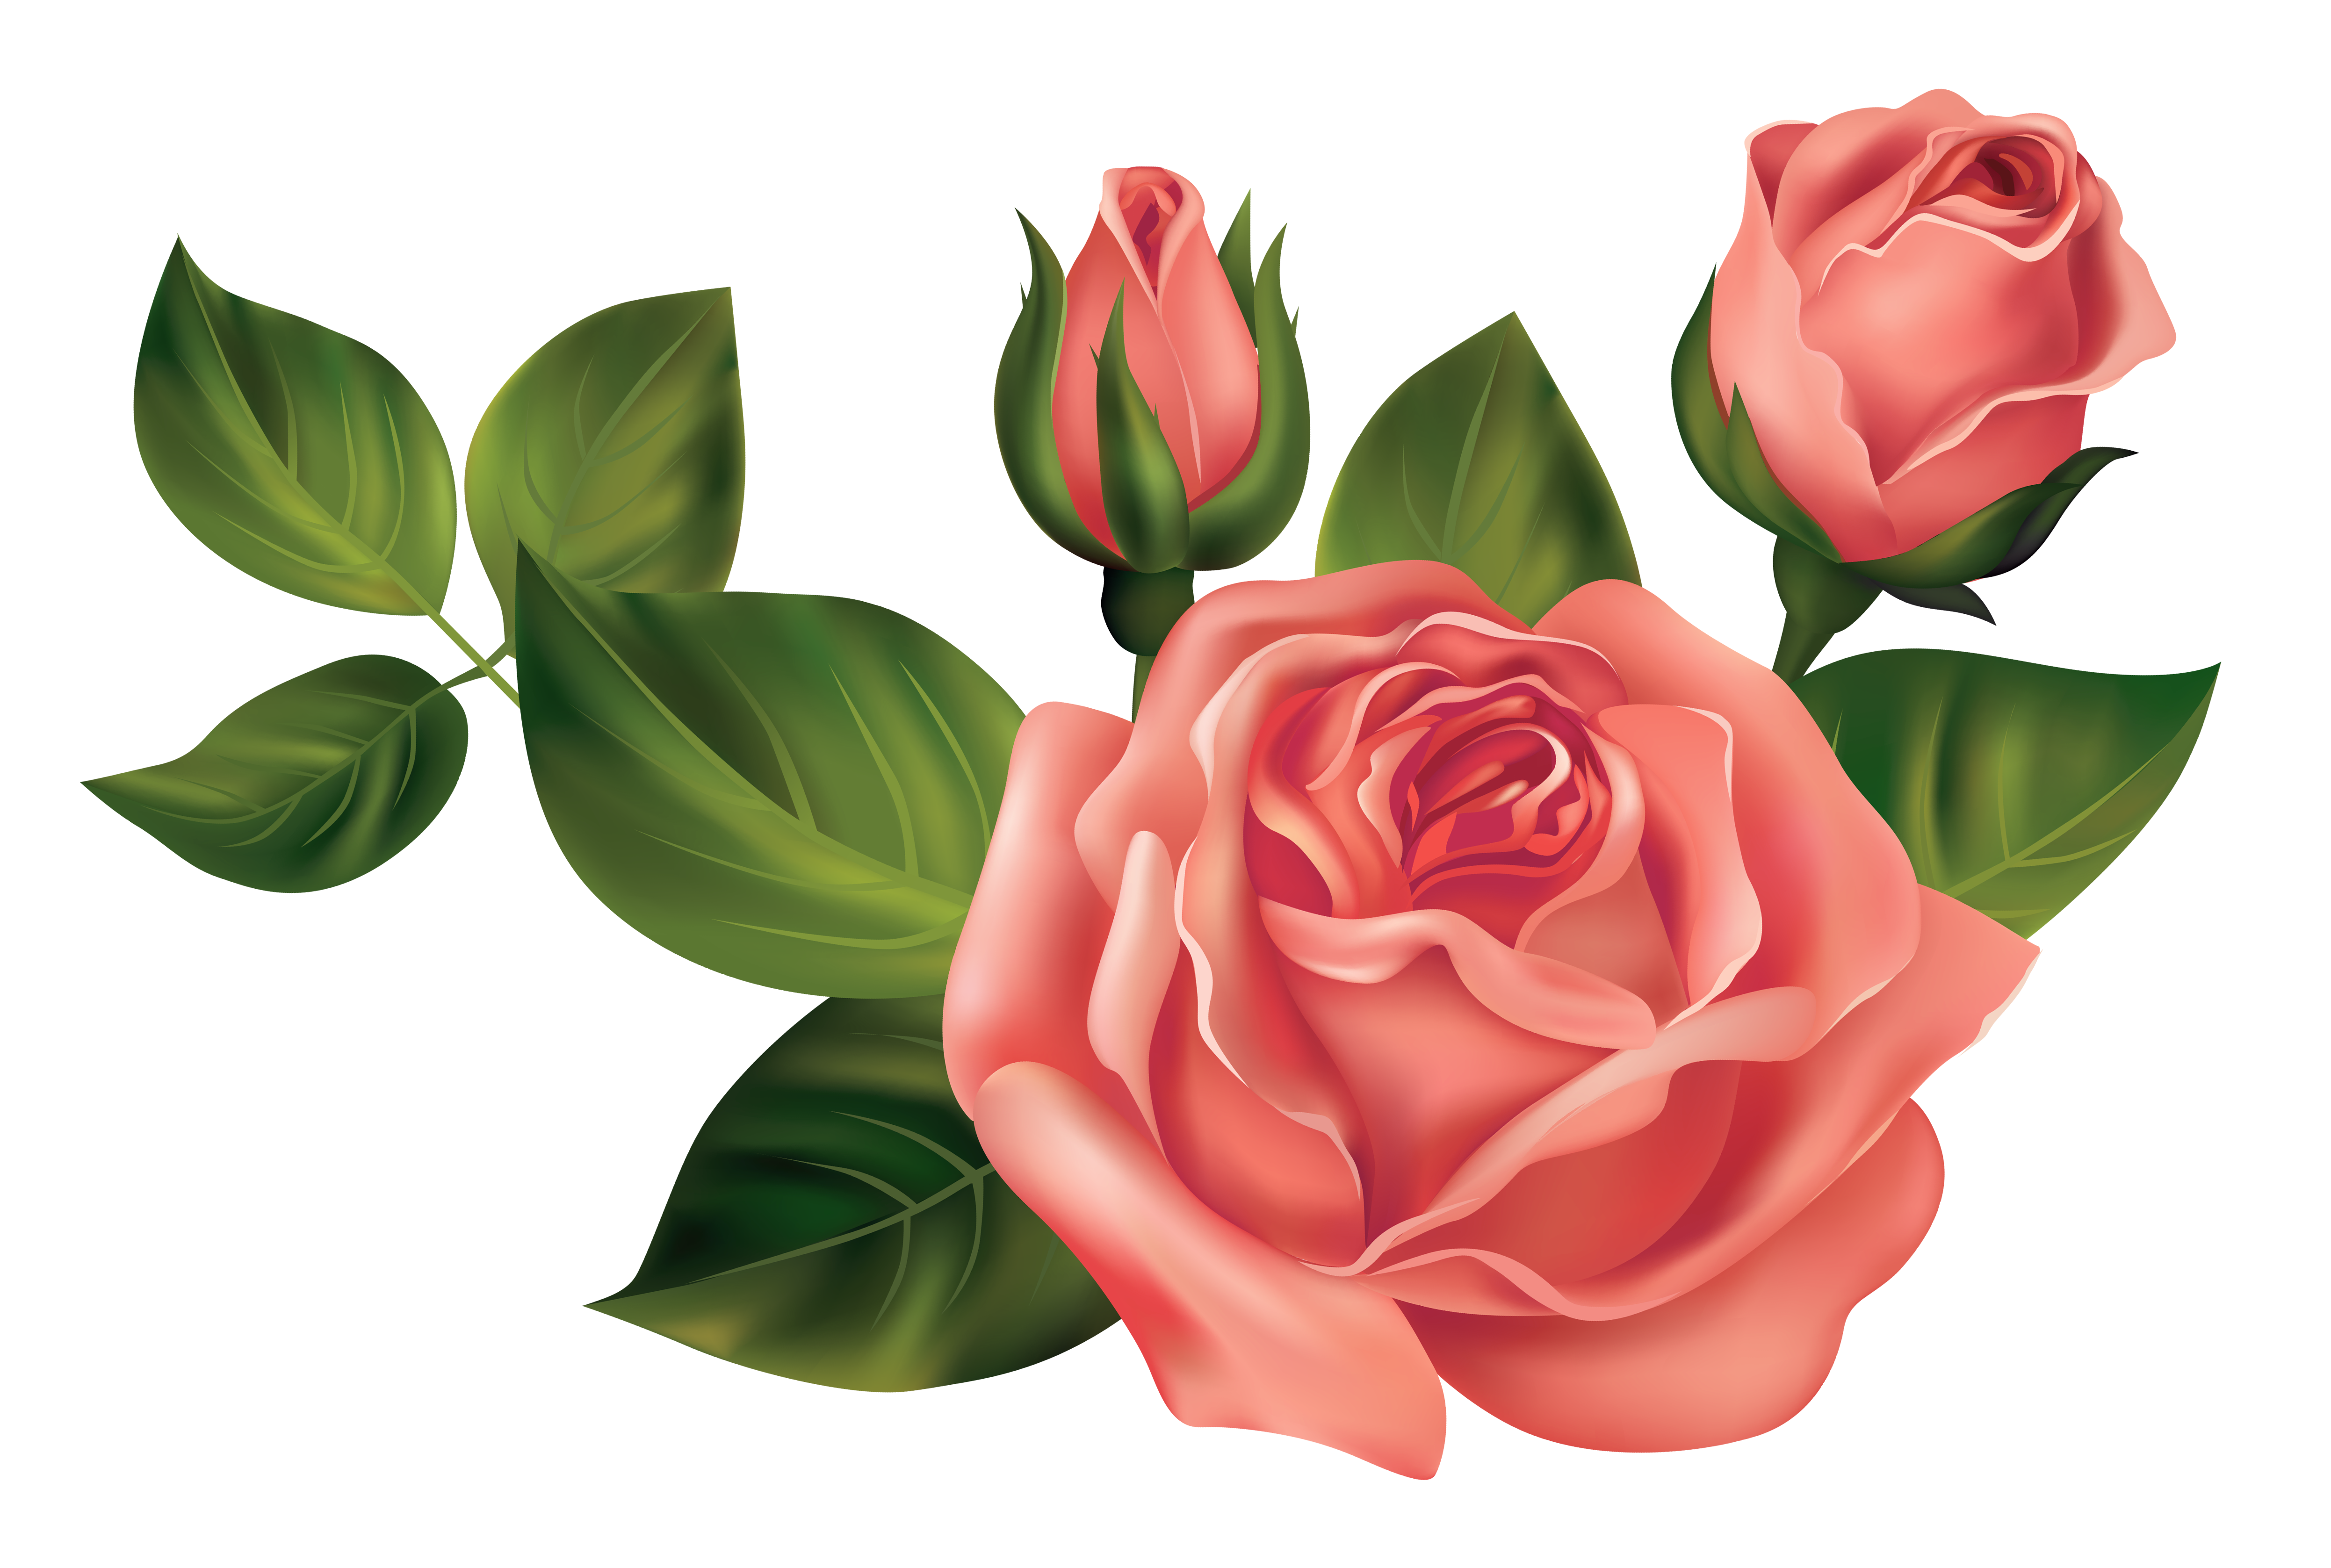 Roses clipart. Transparent png picture gallery